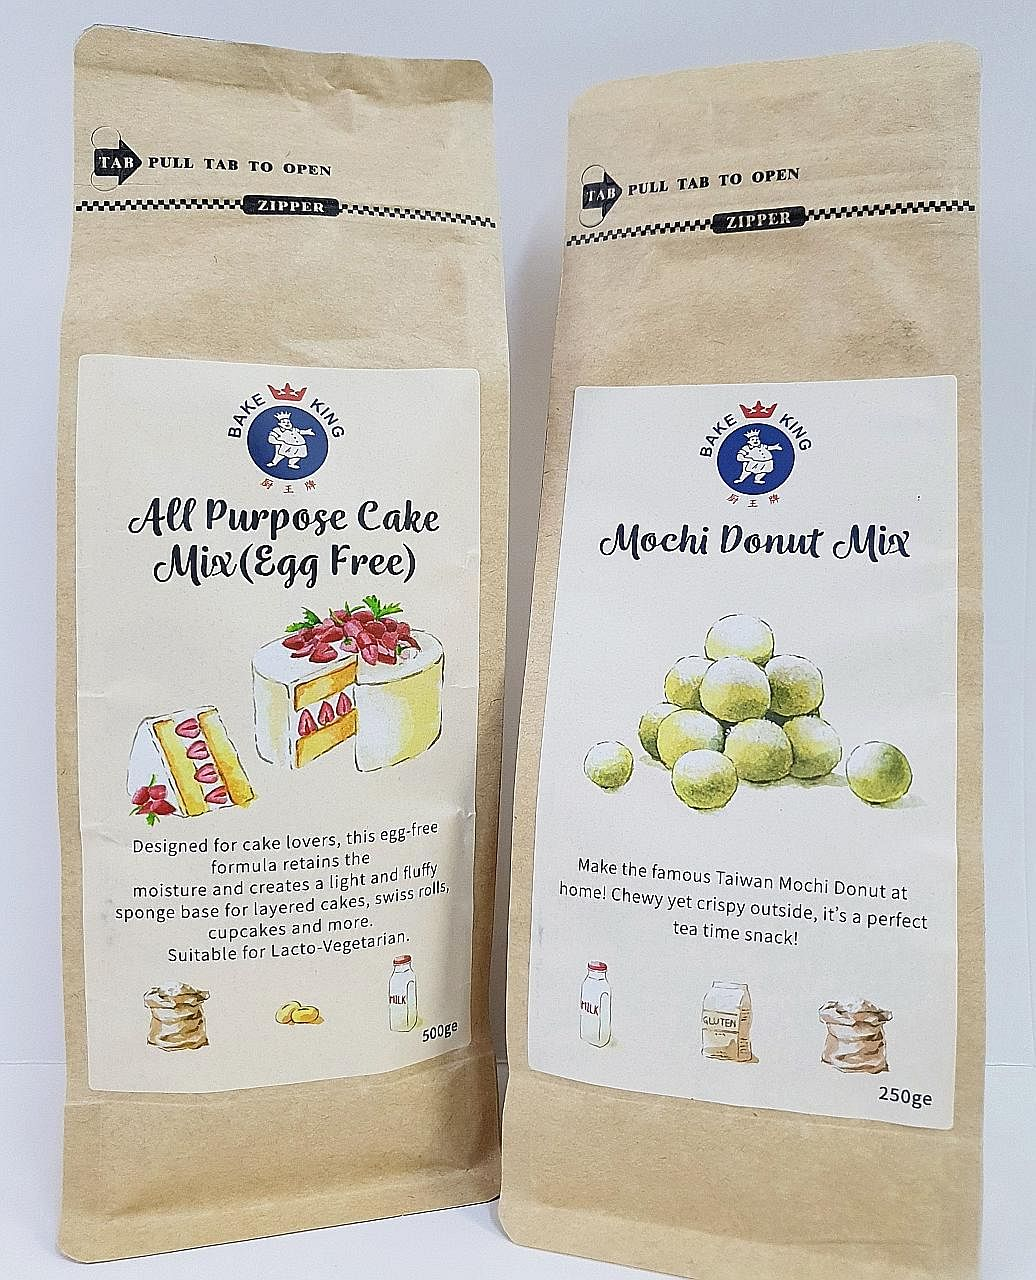 From tomorrow, the first 300 SPH subscribers to buy a Bake King All Purpose Cake Mix (Egg-Free) get a complimentary pack of Bake King Mochi Donut Mix.